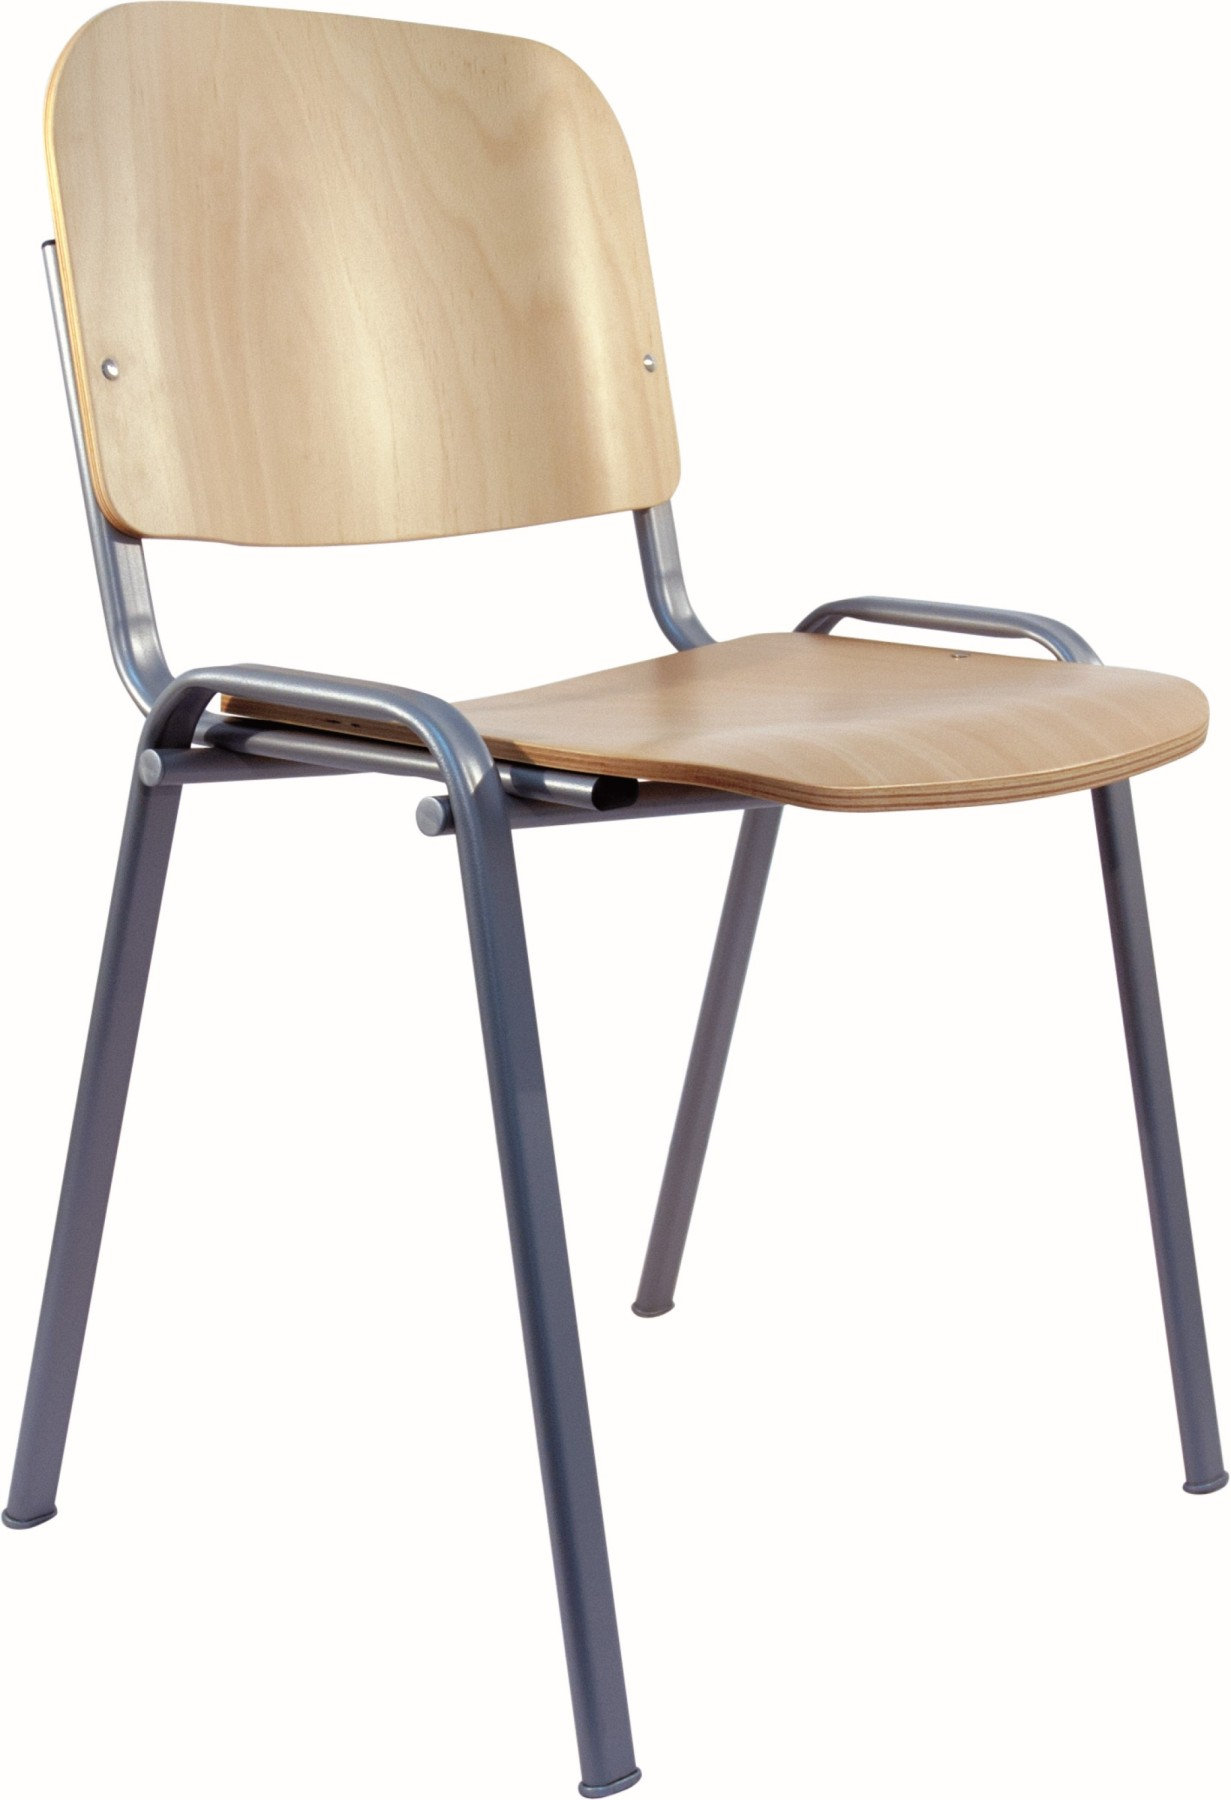 Visitor Chair Desk Ergonomic, Stackable, Multipurpose And Structure In Gray Color Up Seat And Backstop Wooden Lacquer Col